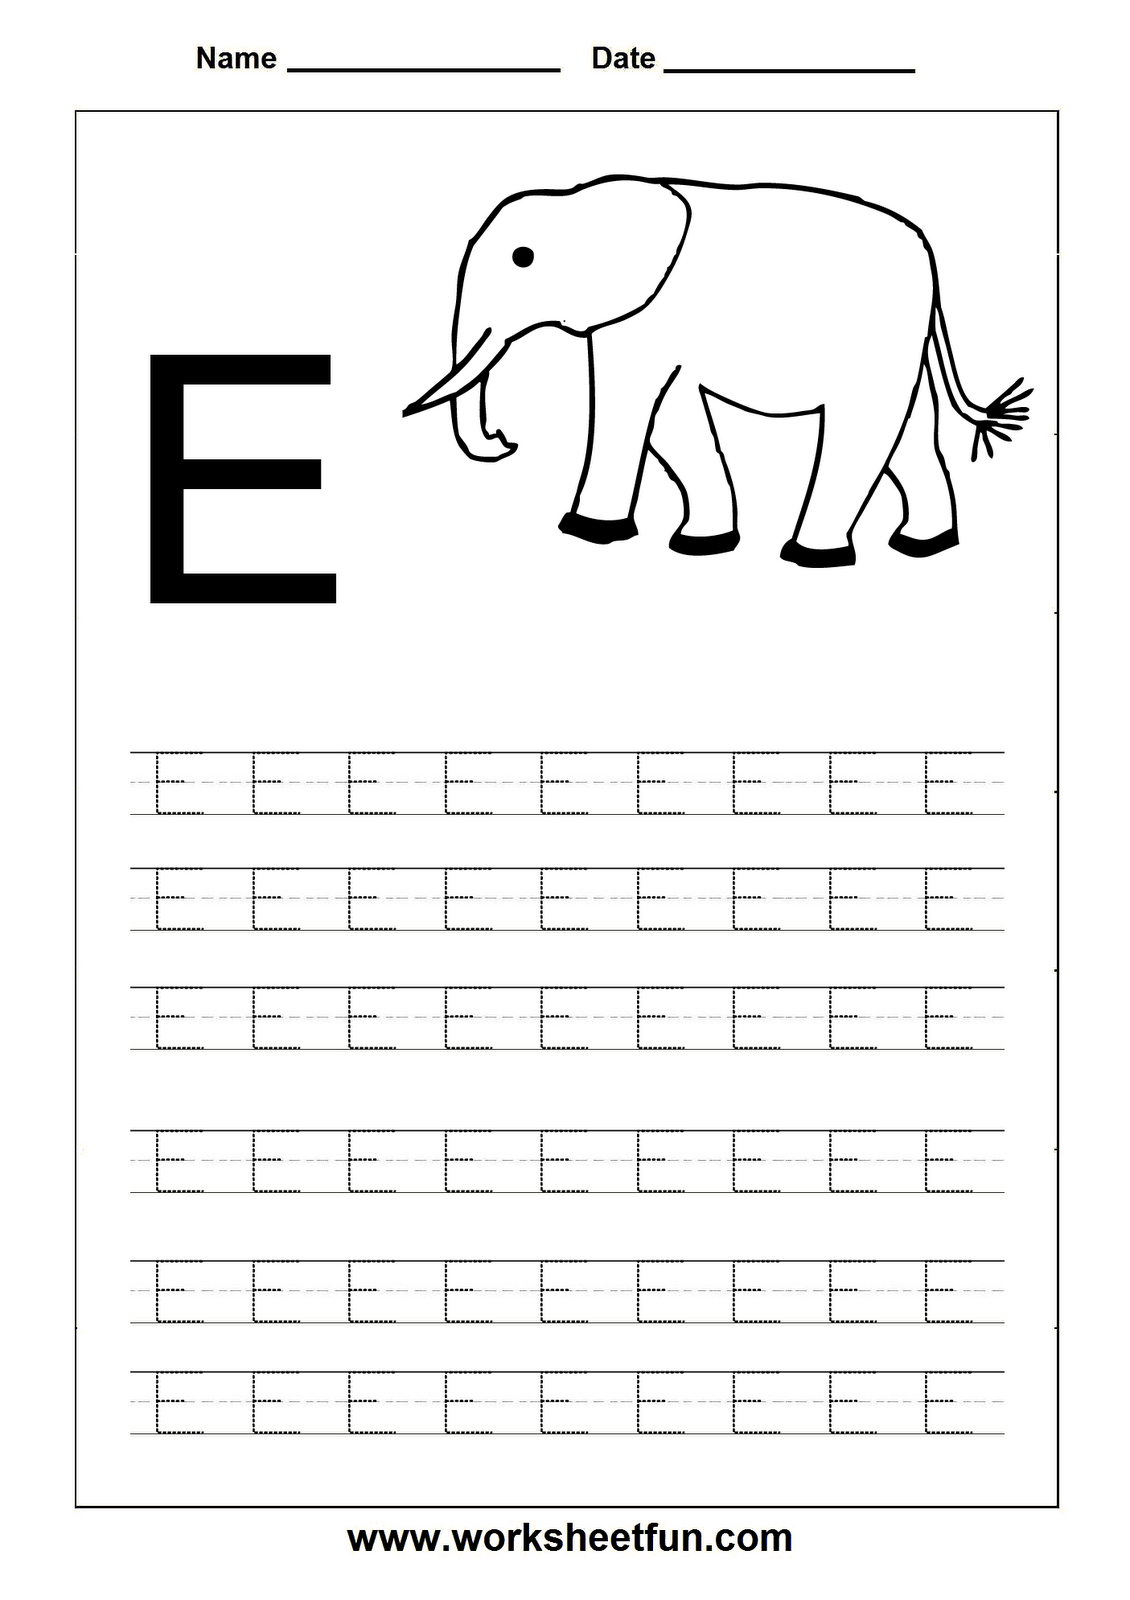 Free Printable Worksheets - Contents | Letter E Worksheets intended for Letter E Worksheets For Nursery